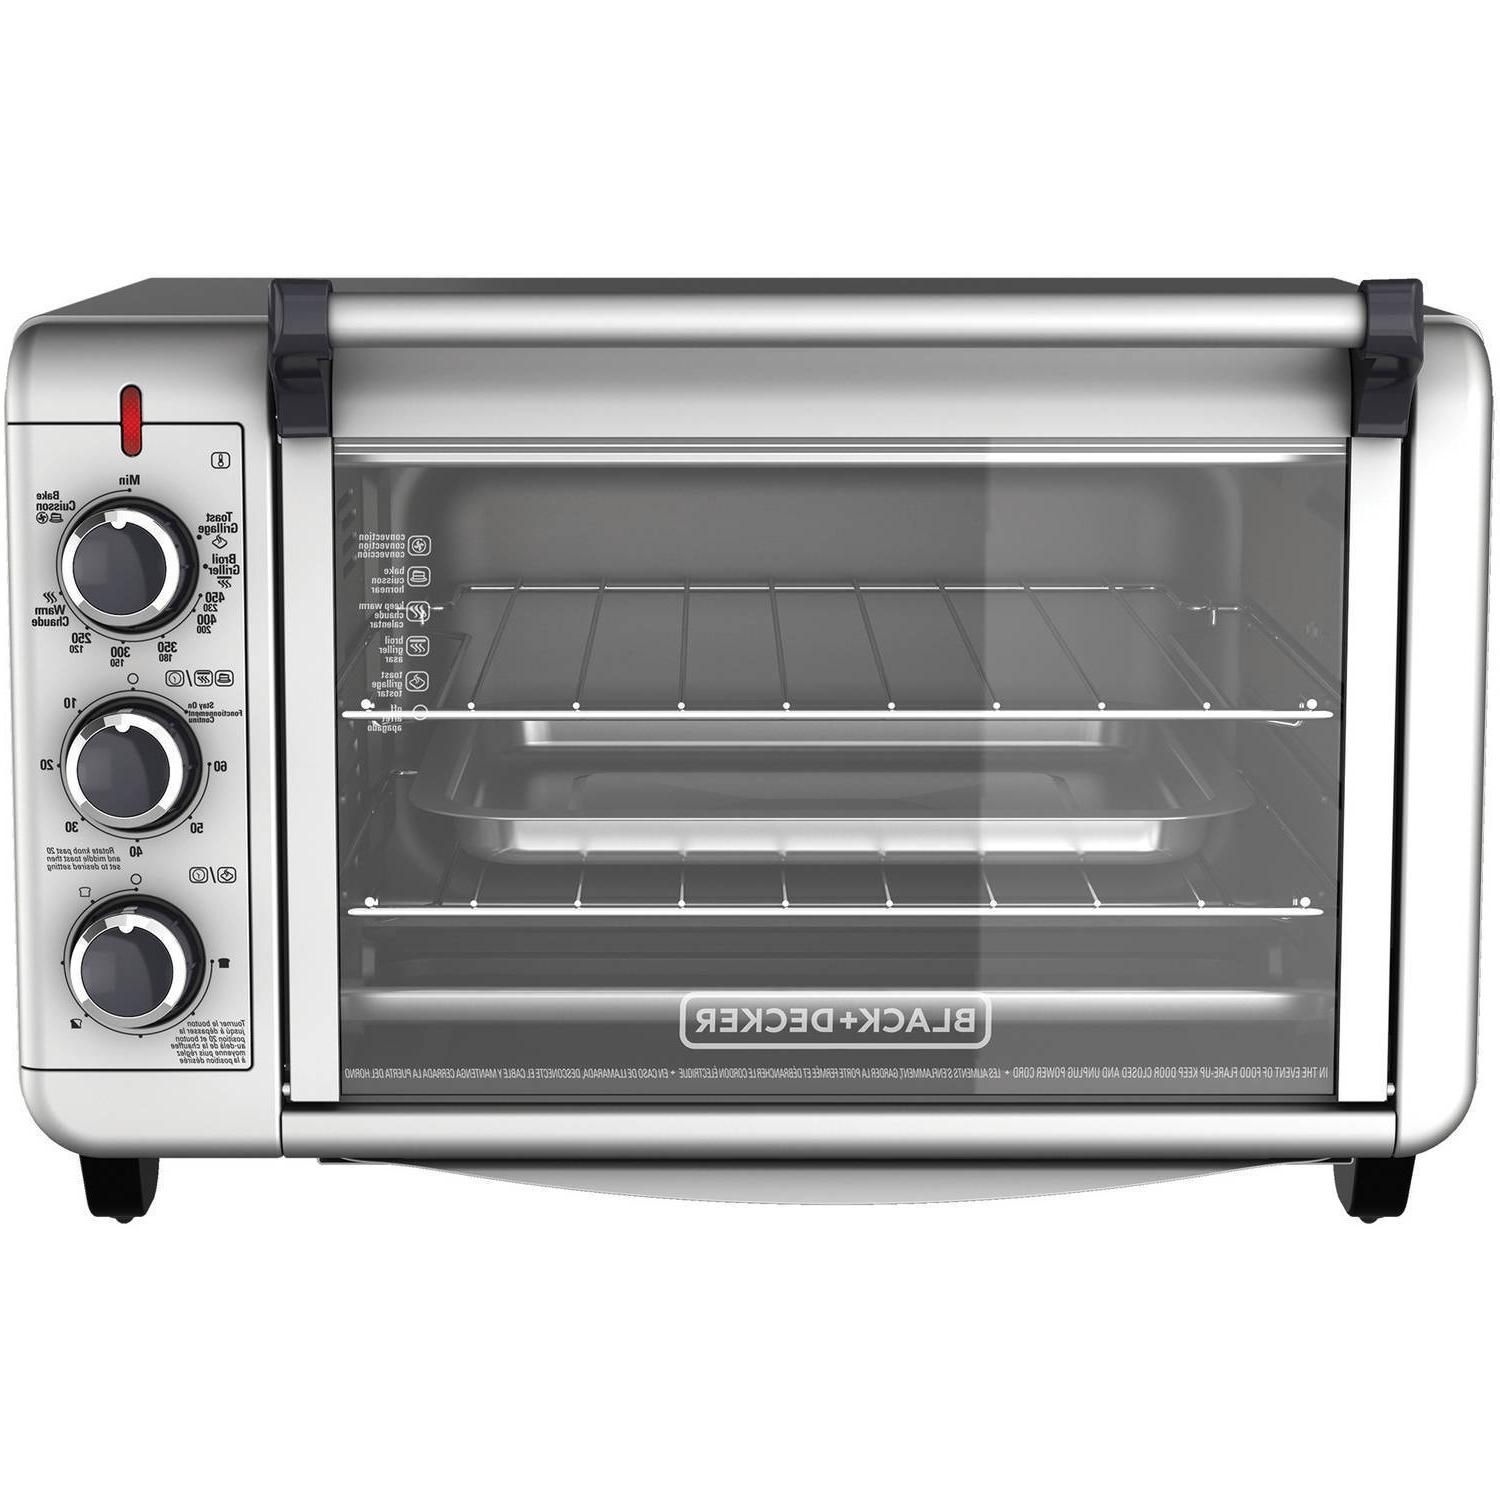 6 slice convection countertop toaster oven stainless